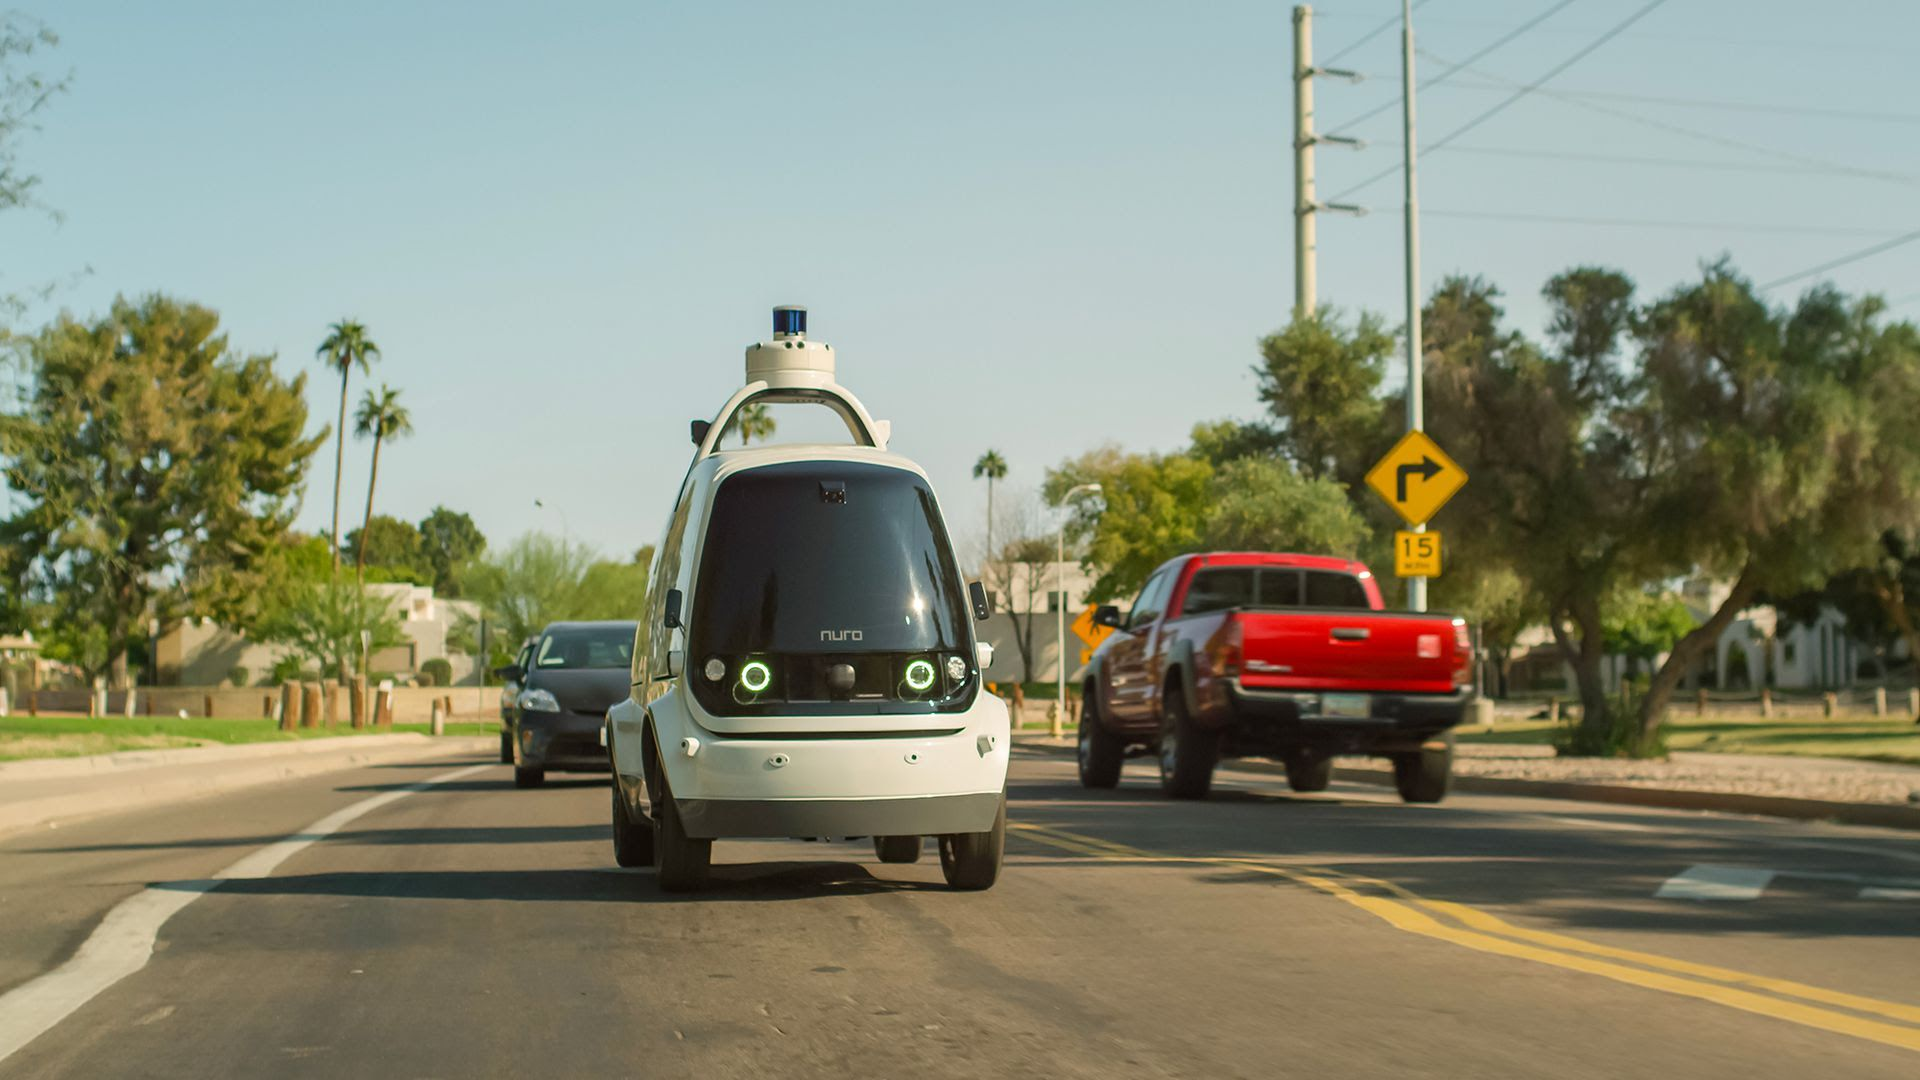 Nuro's unmanned delivery vehicles are half the width of a Toyota Camry and limited to 25 mph